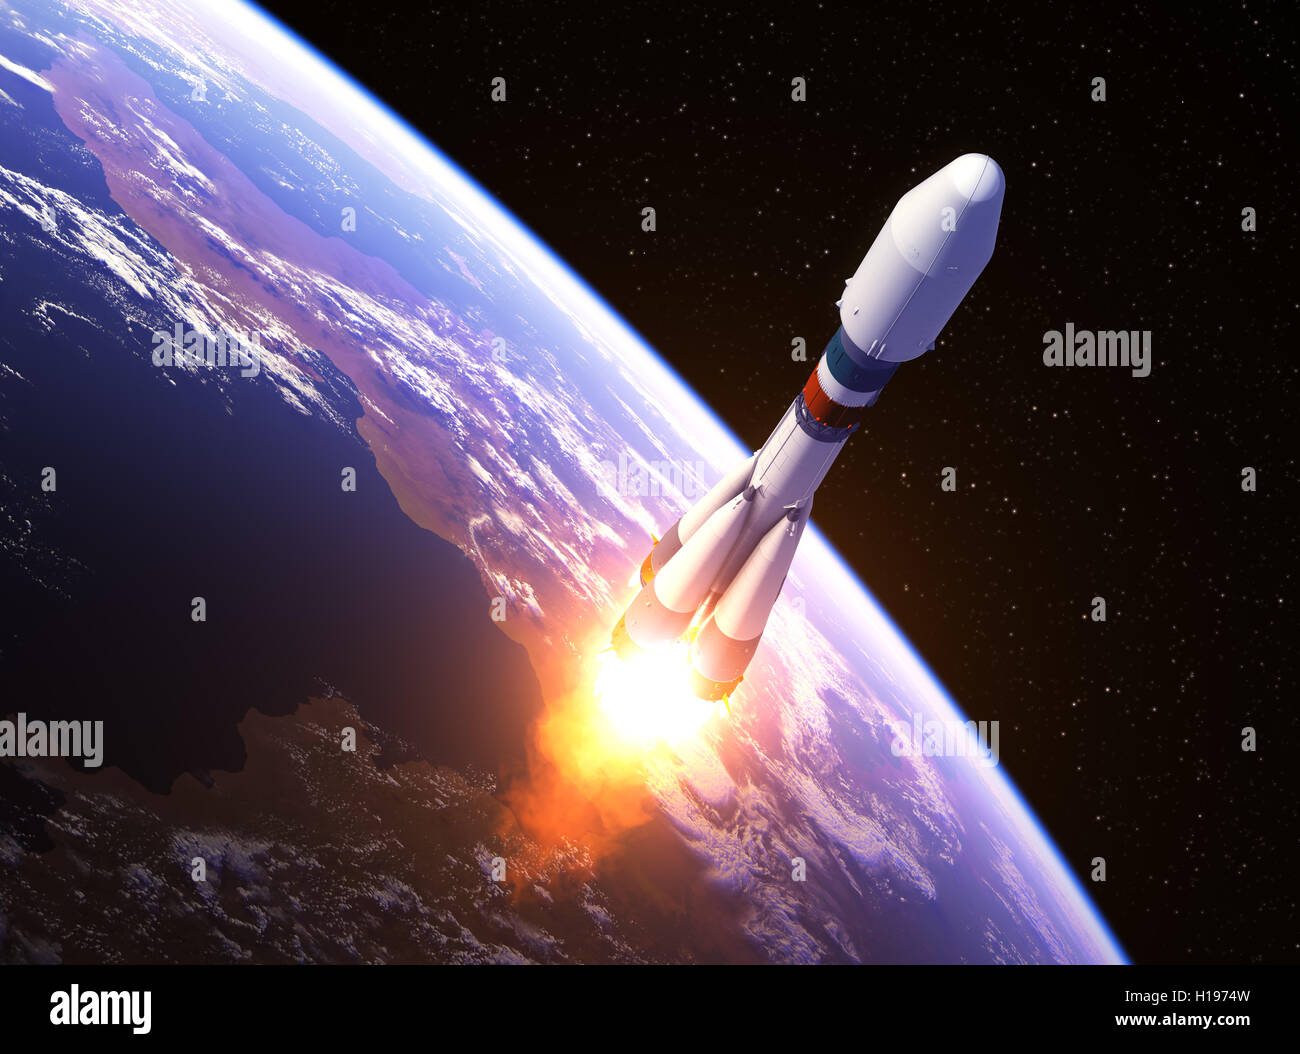 Heavy Carrier Rocket Launch In Space. 3D Illustration. - Stock Image